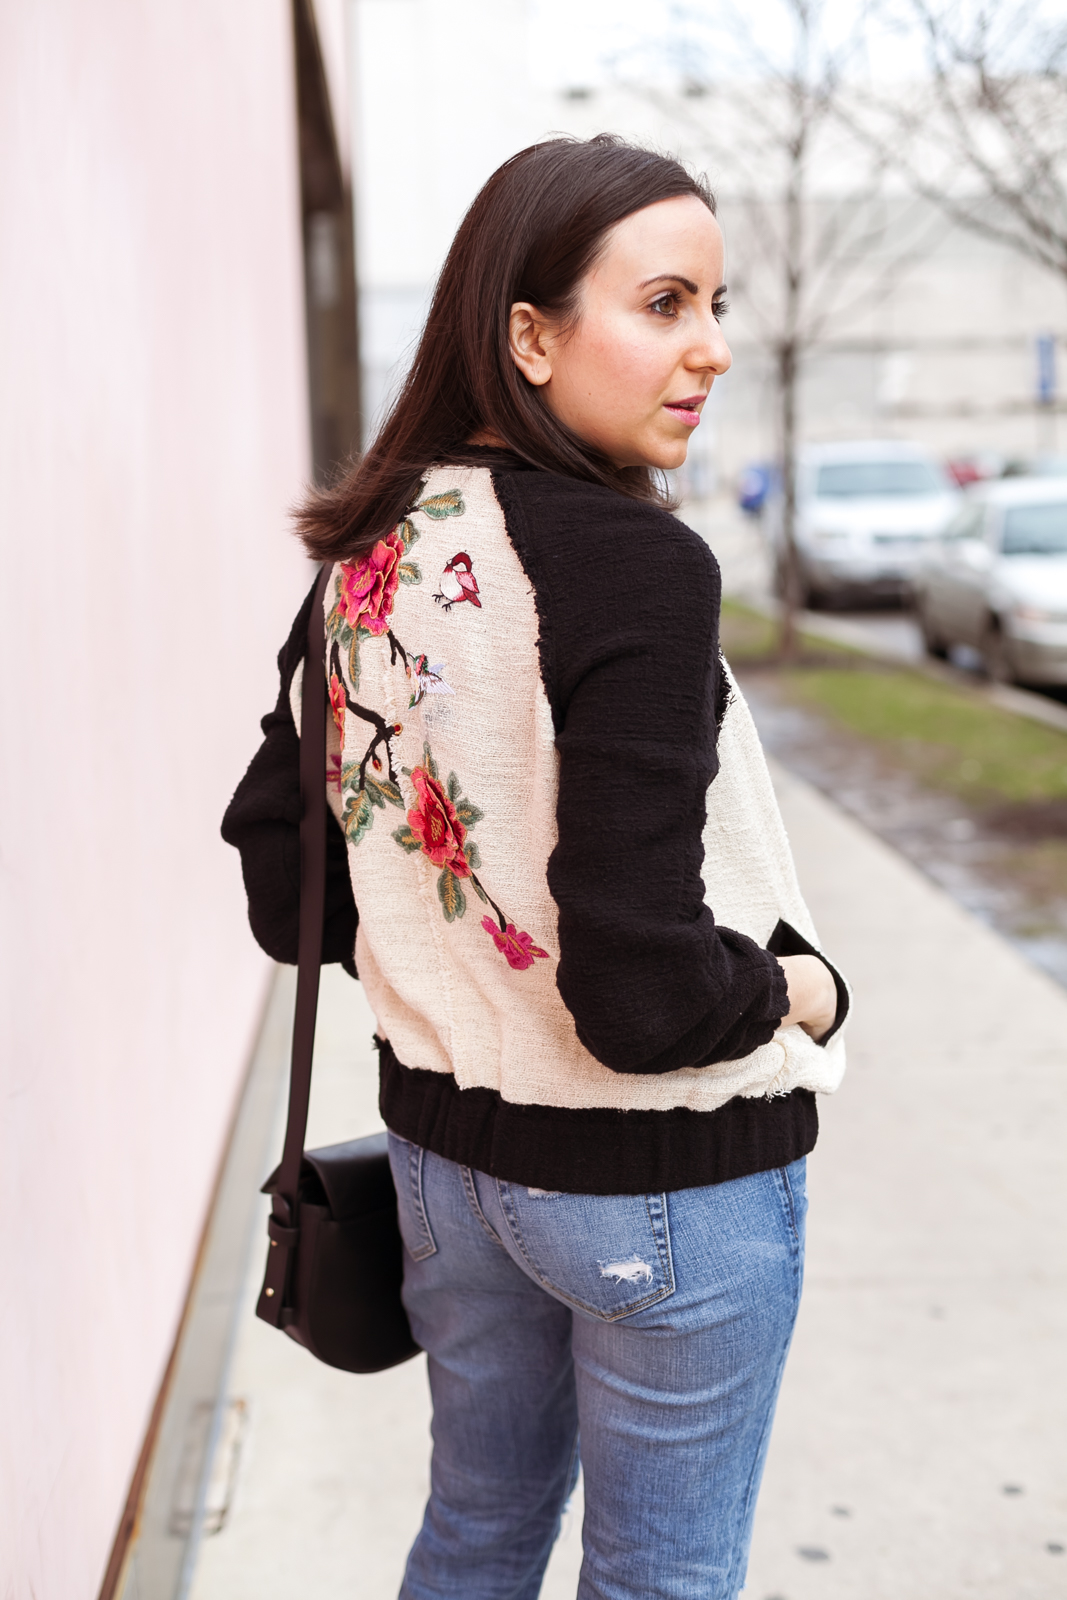 Yana of NoMad Luxuries wearing ripped jeans with a floral embroidered jacket from Zara for Spring style in Chicago